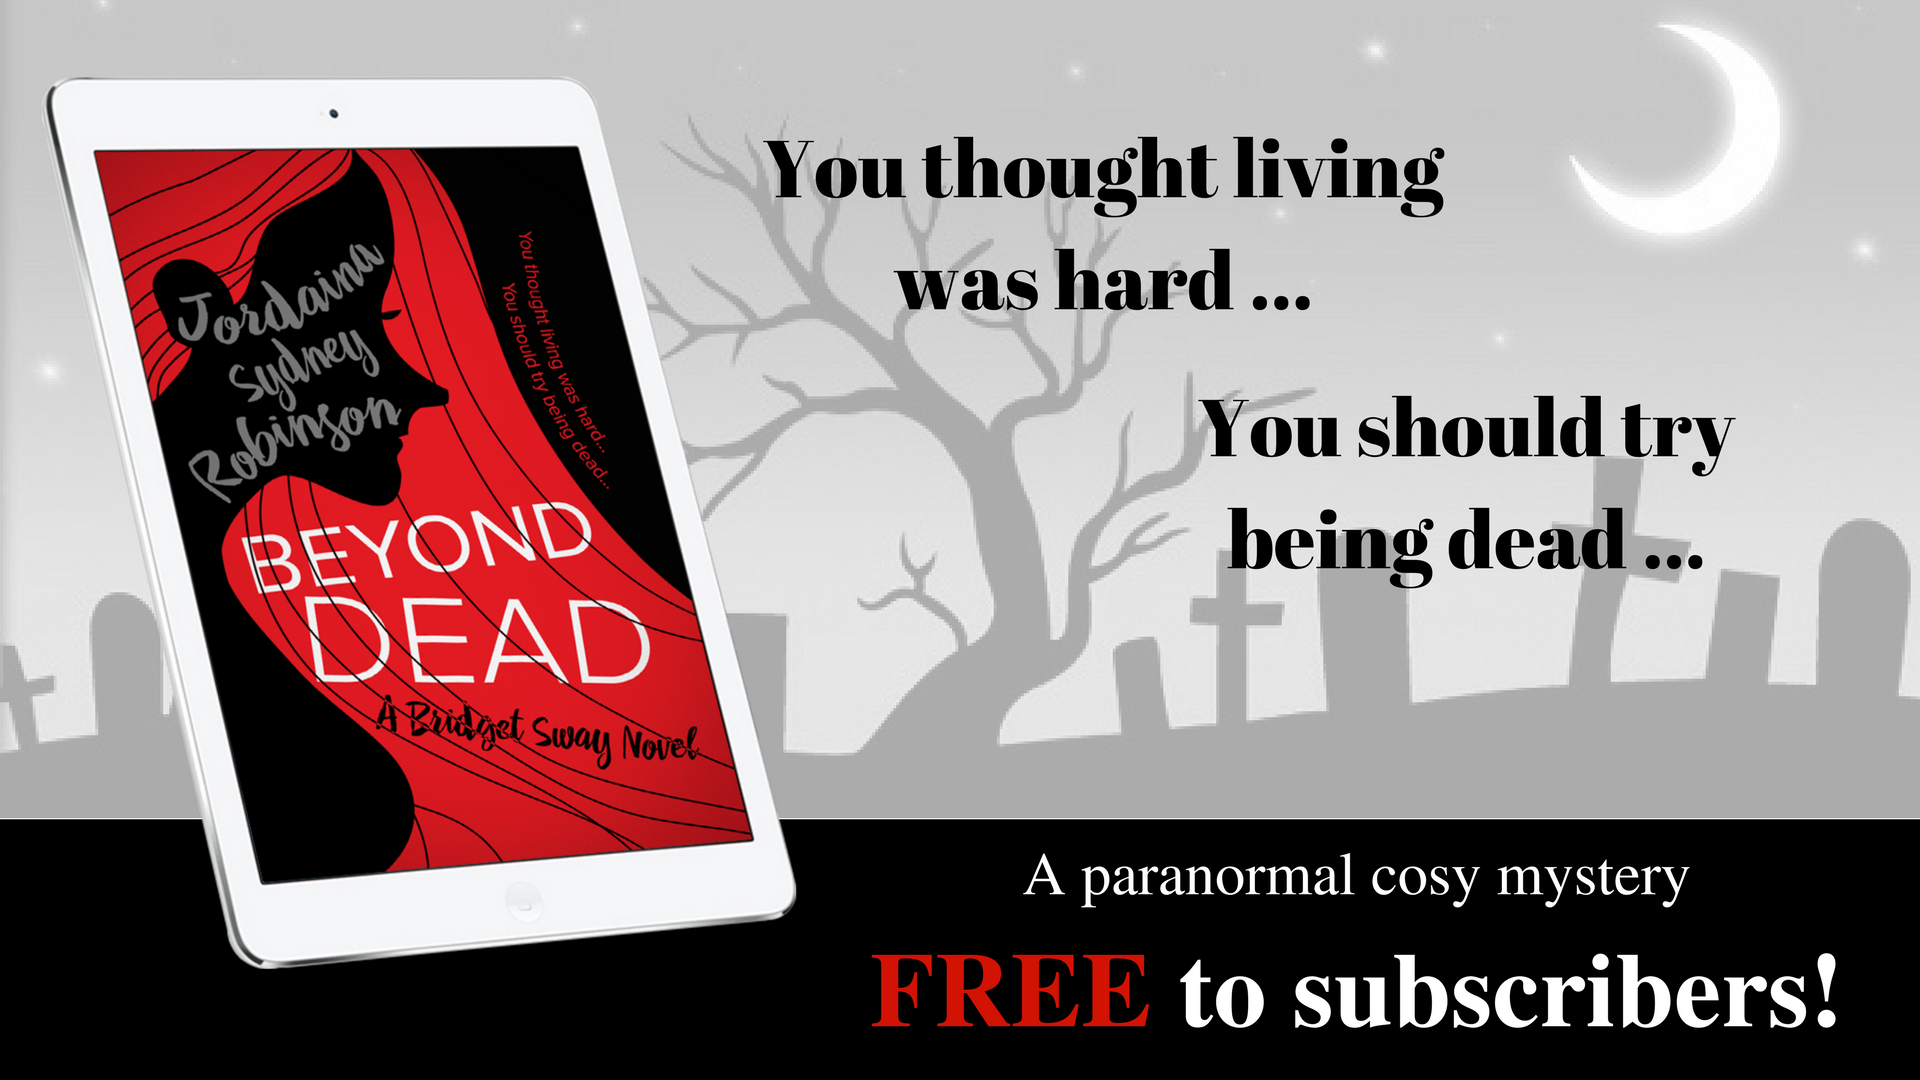 Book Hub is giving away free copies of Jordaina's Beyond Dead